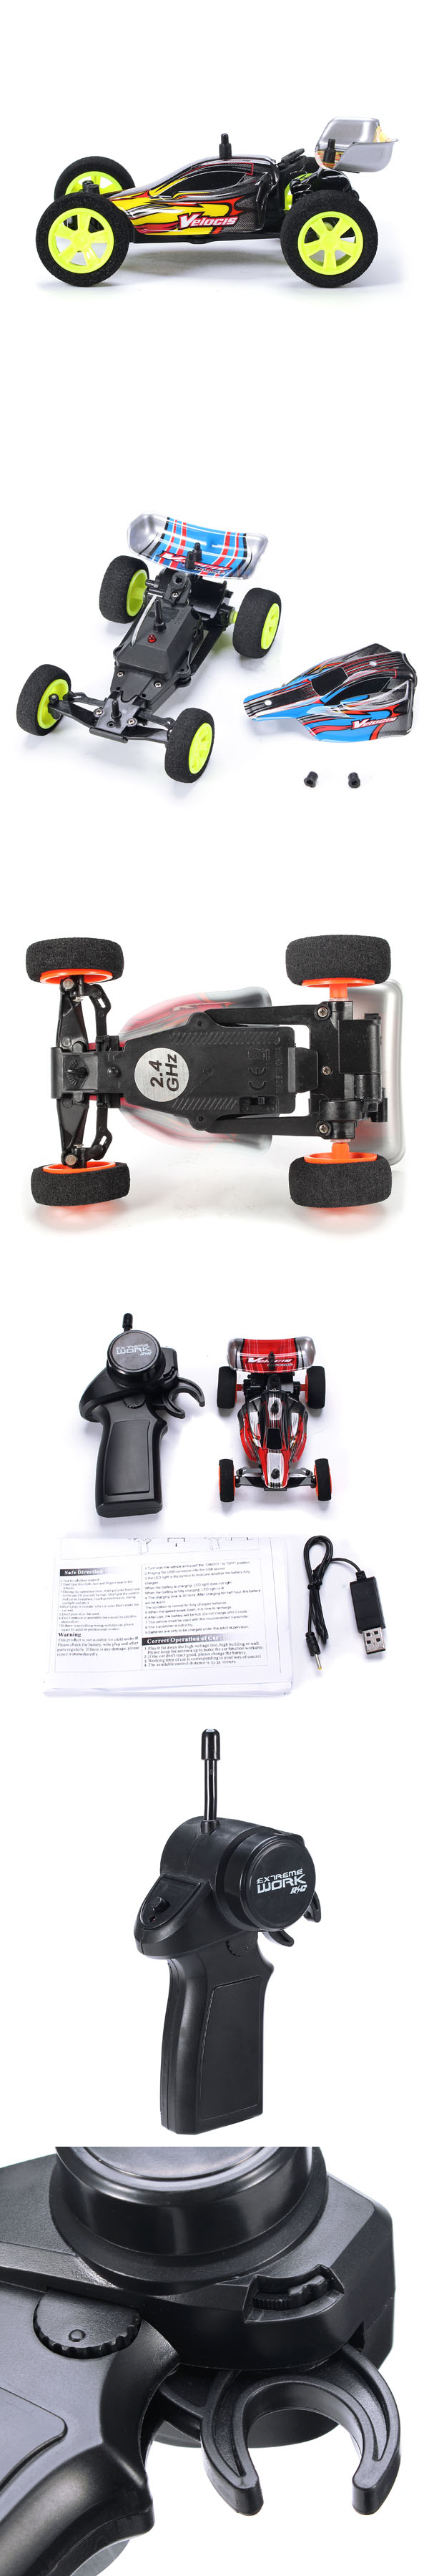 2pcs Velocis 1/32 2.4G RC Racing Car Mutiplayer in Parallel Operate USB Charging Edition